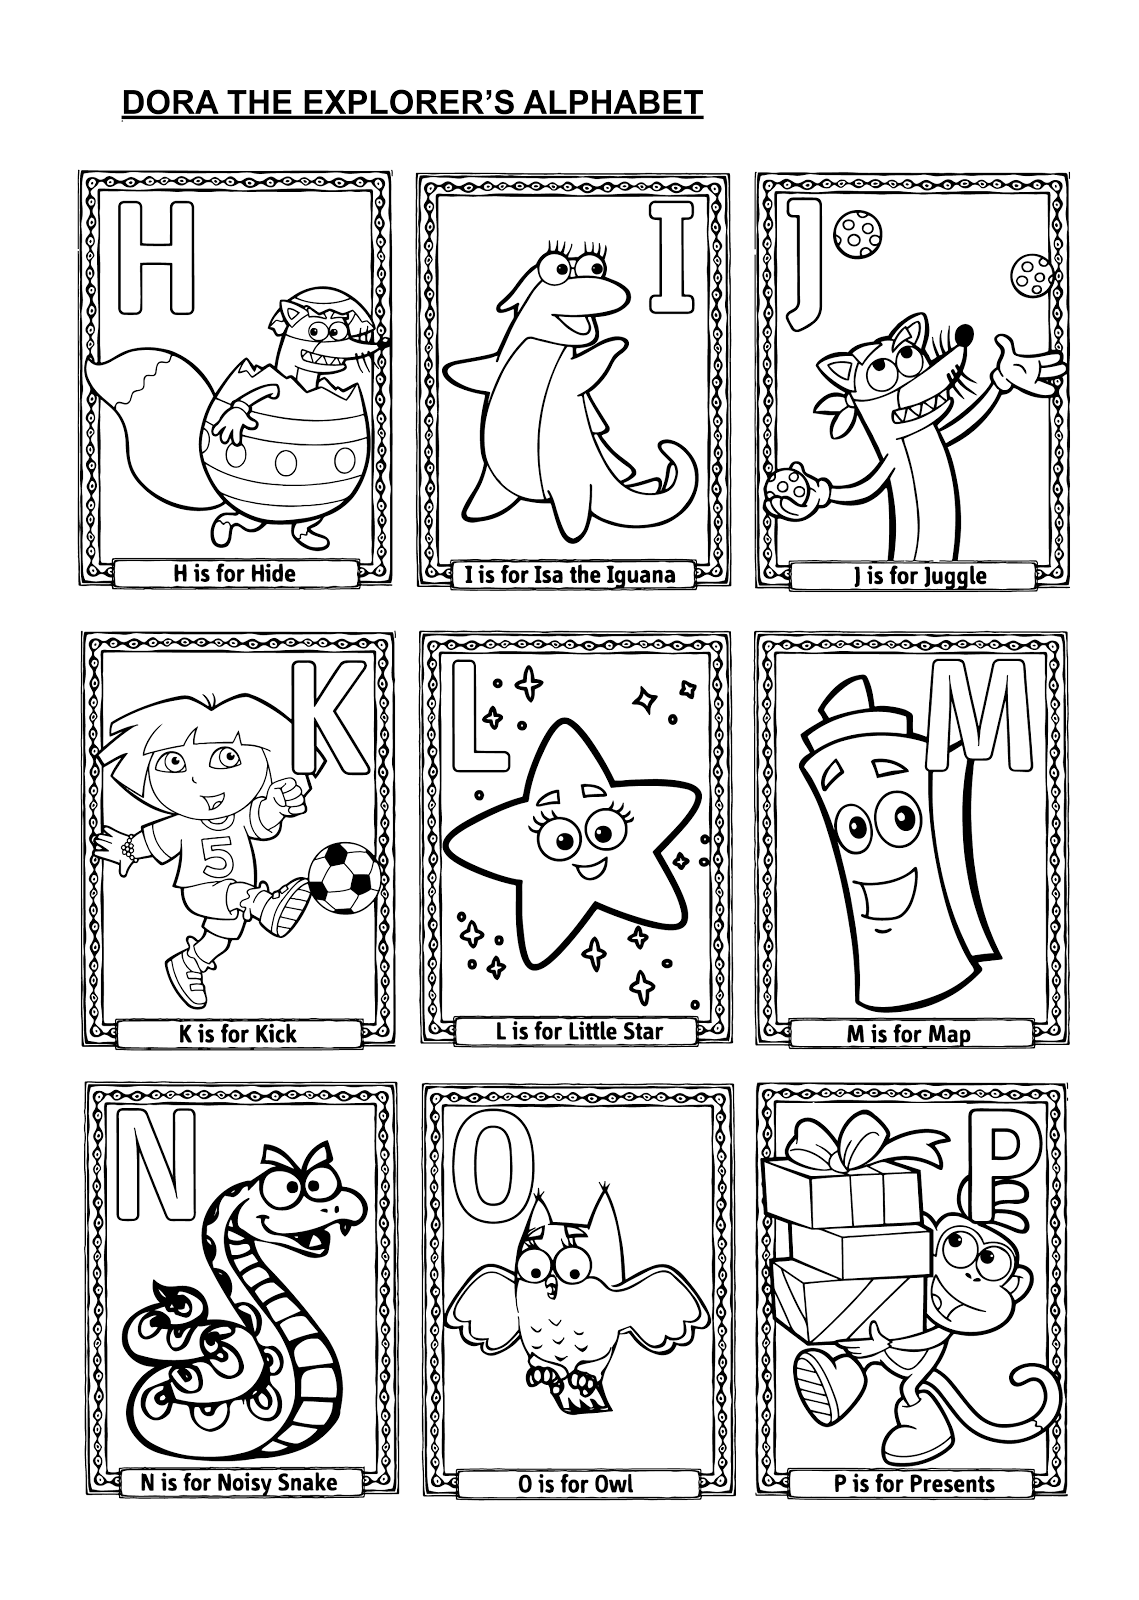 coloring pages dora map - photo#27